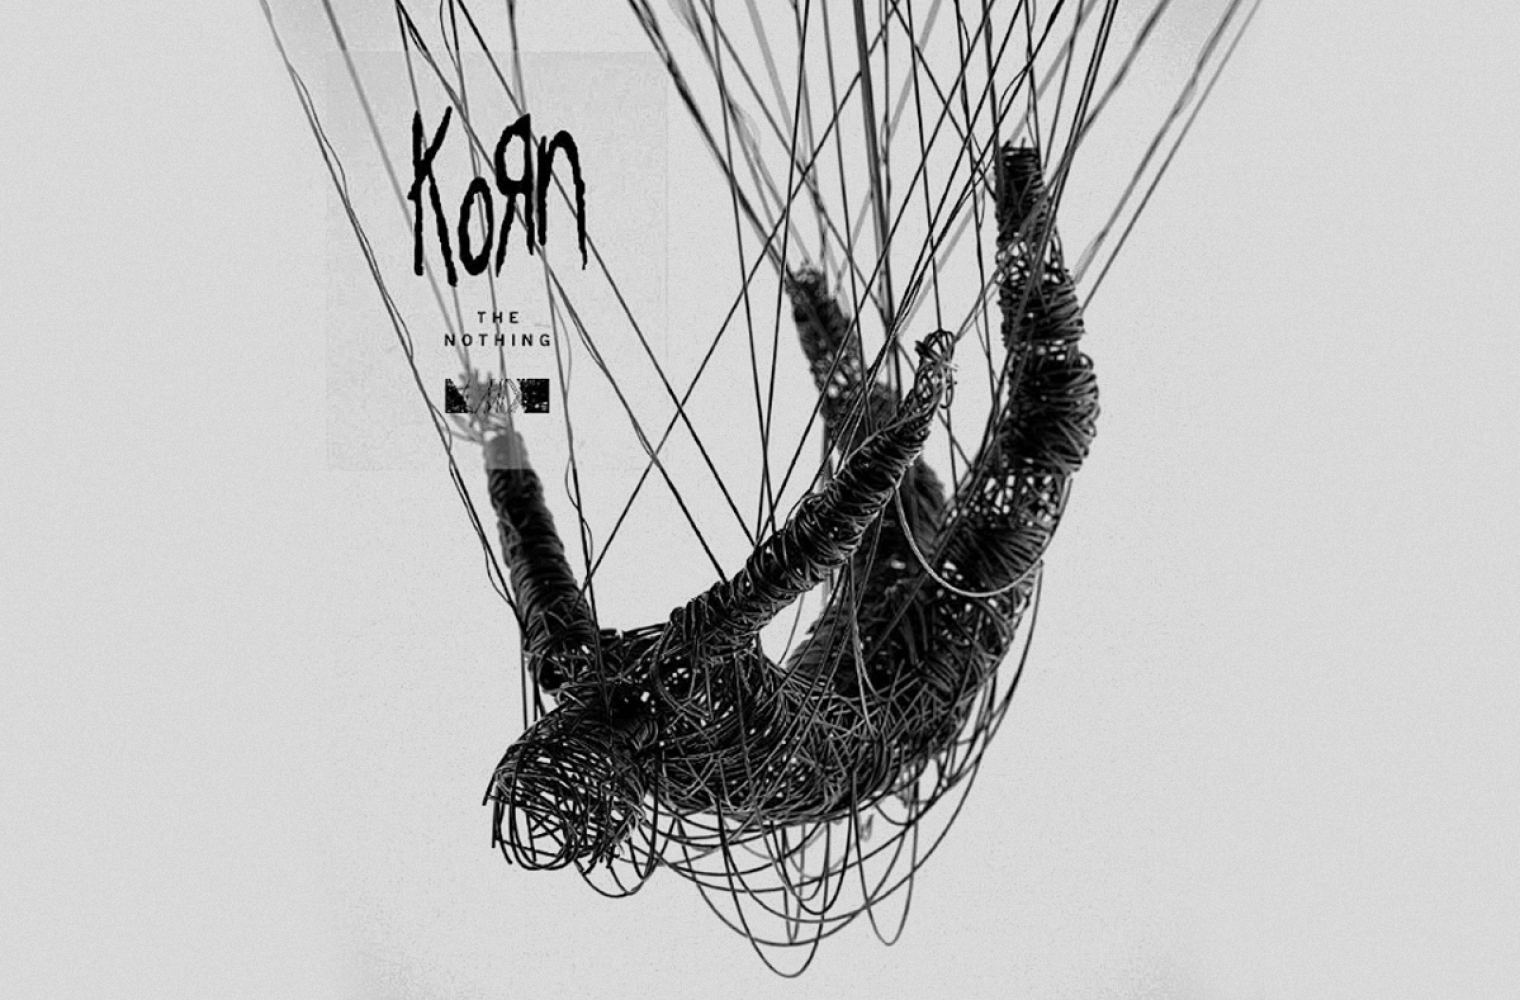 Listen To Track 8 From Korn's Upcoming Album 'The Nothing'